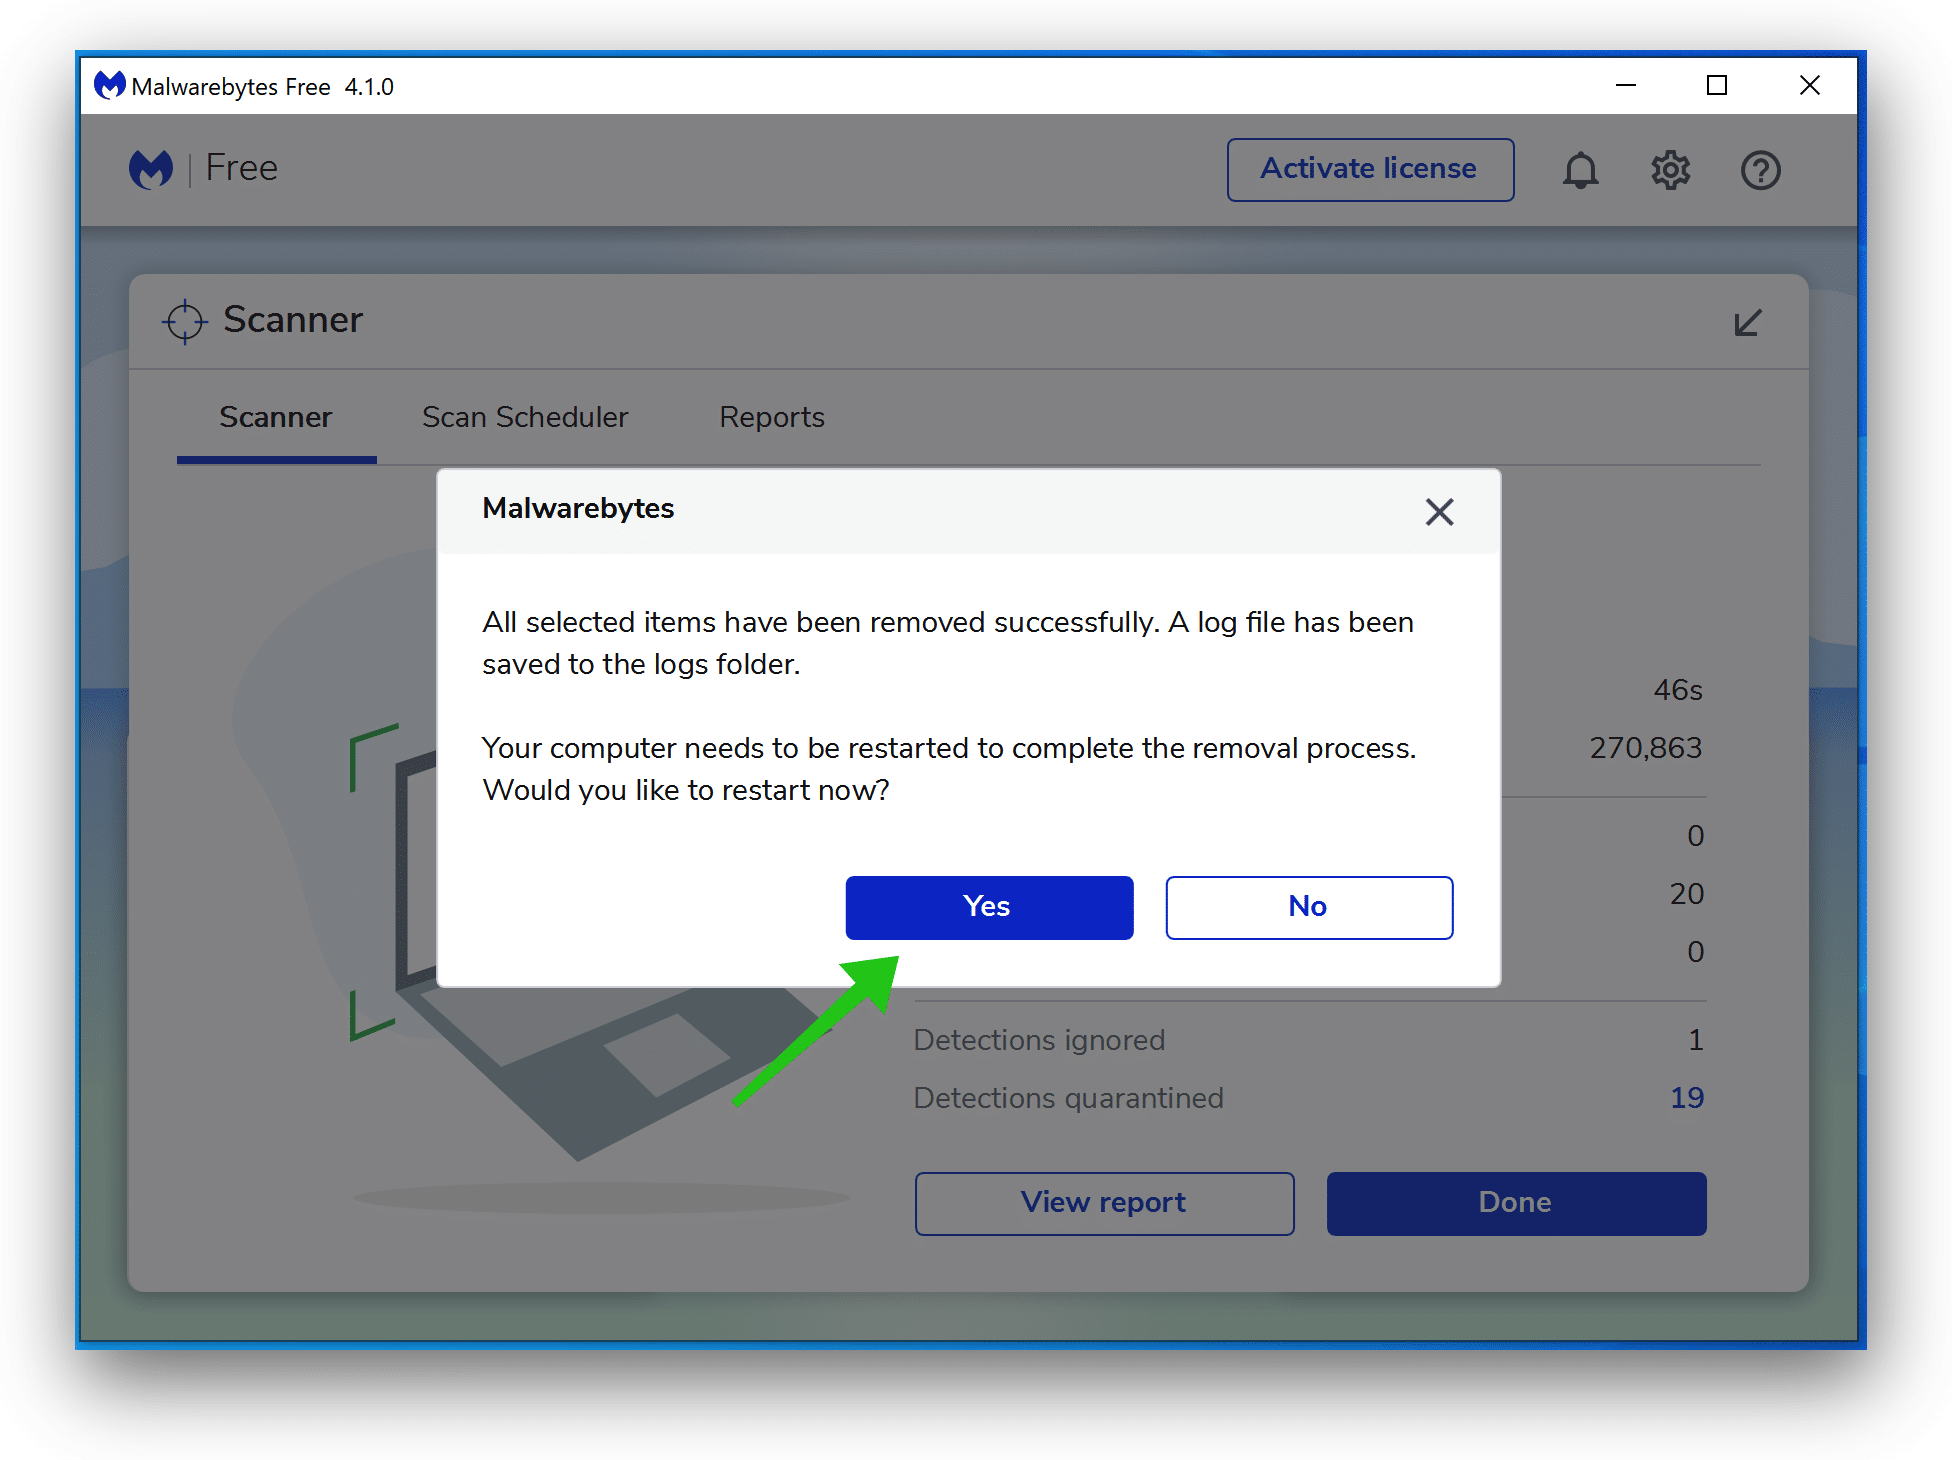 Reinicie o Windows - Malwarebytes